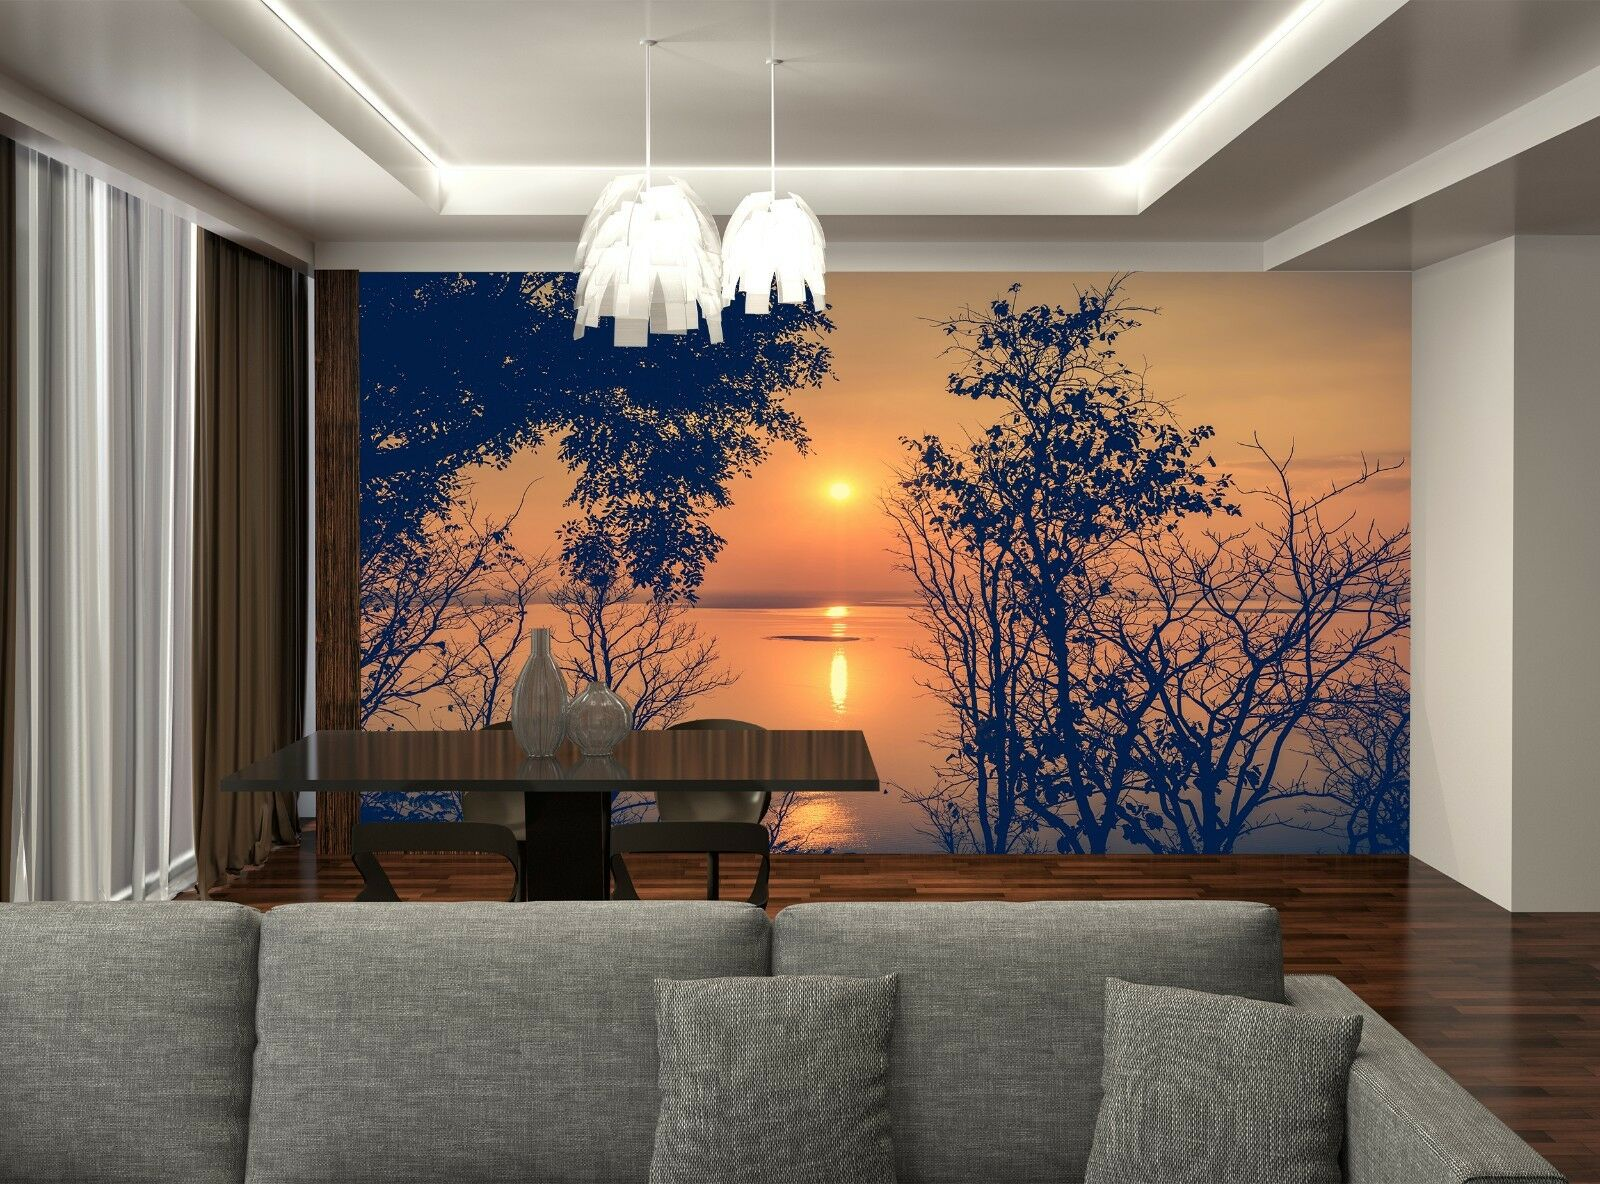 Photo Wallpaper Farbeful Sunset GIANT WALL DECOR PAPER POSTER FOR BEDROOM